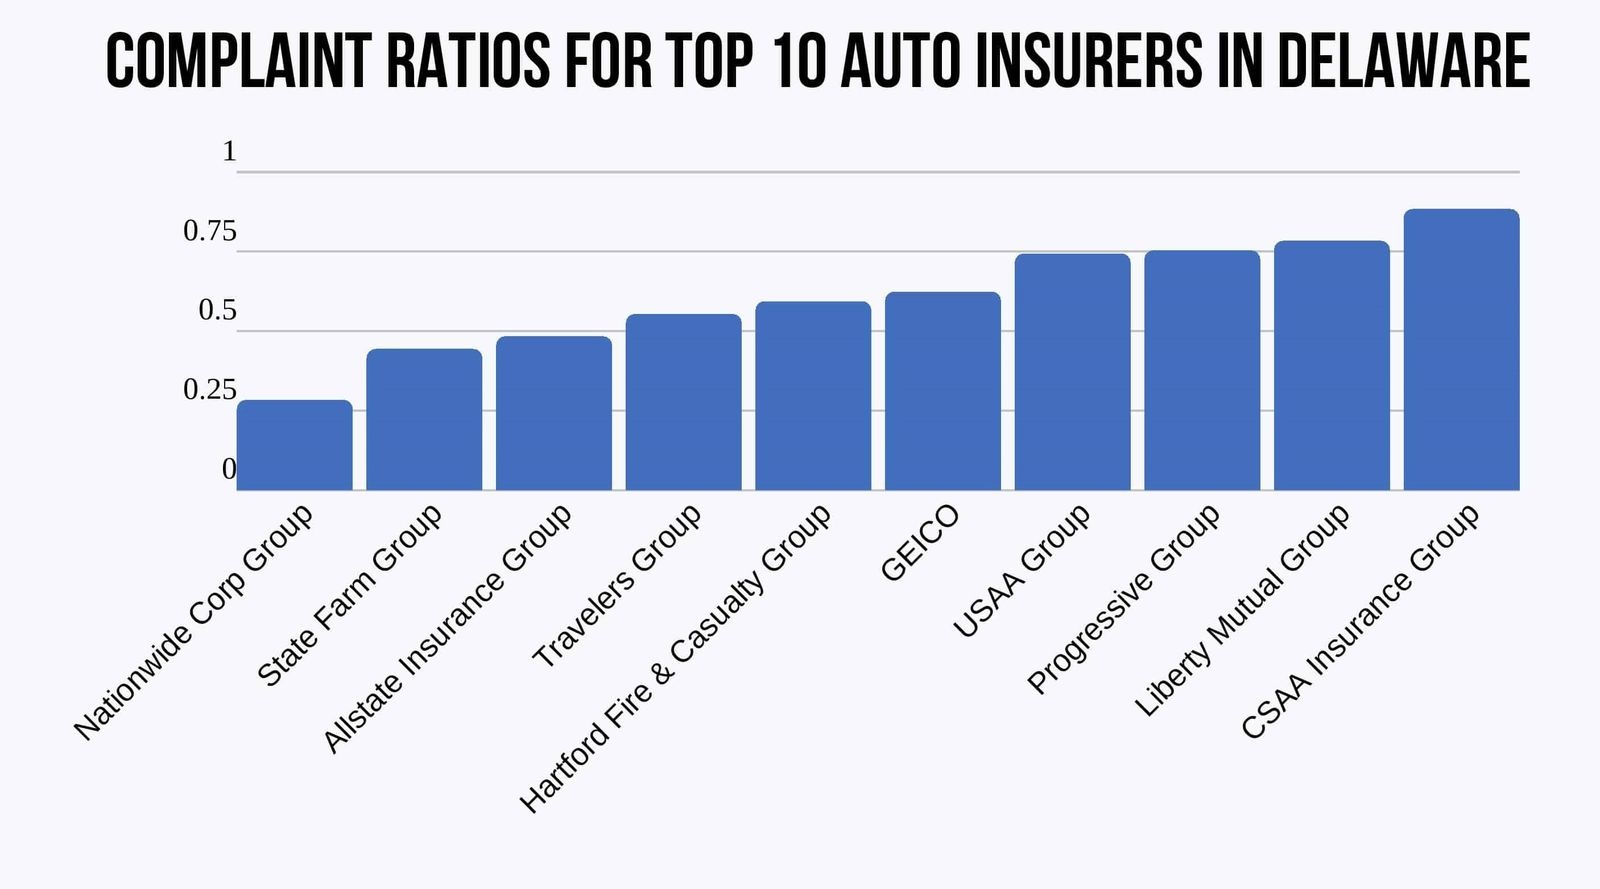 bar chart of Complaint Ratios of the Top 10 Auto Insurers in Delaware